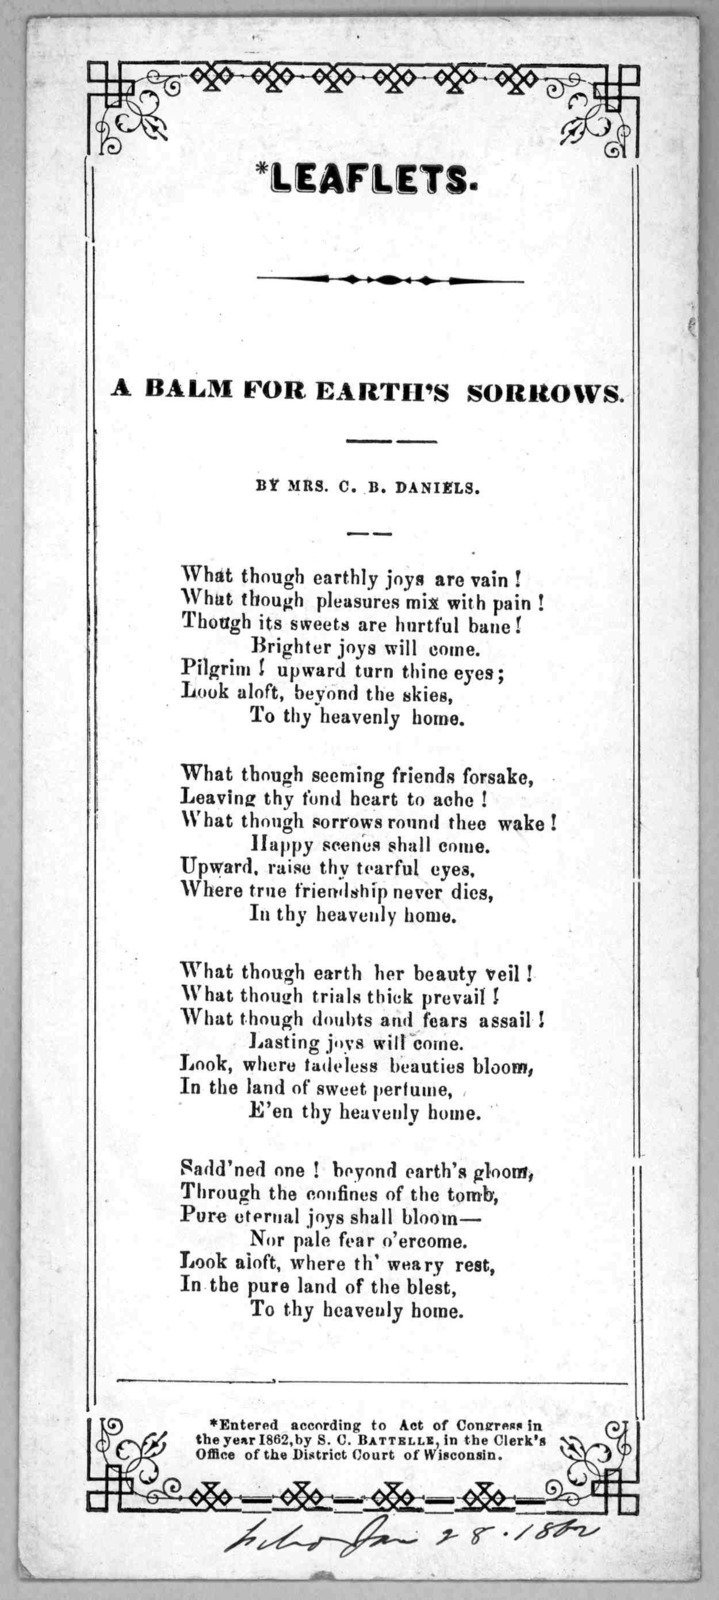 Leaflets. A balm for earth's sorrows. By Mrs. C. B. Daniels. [c. 1862].